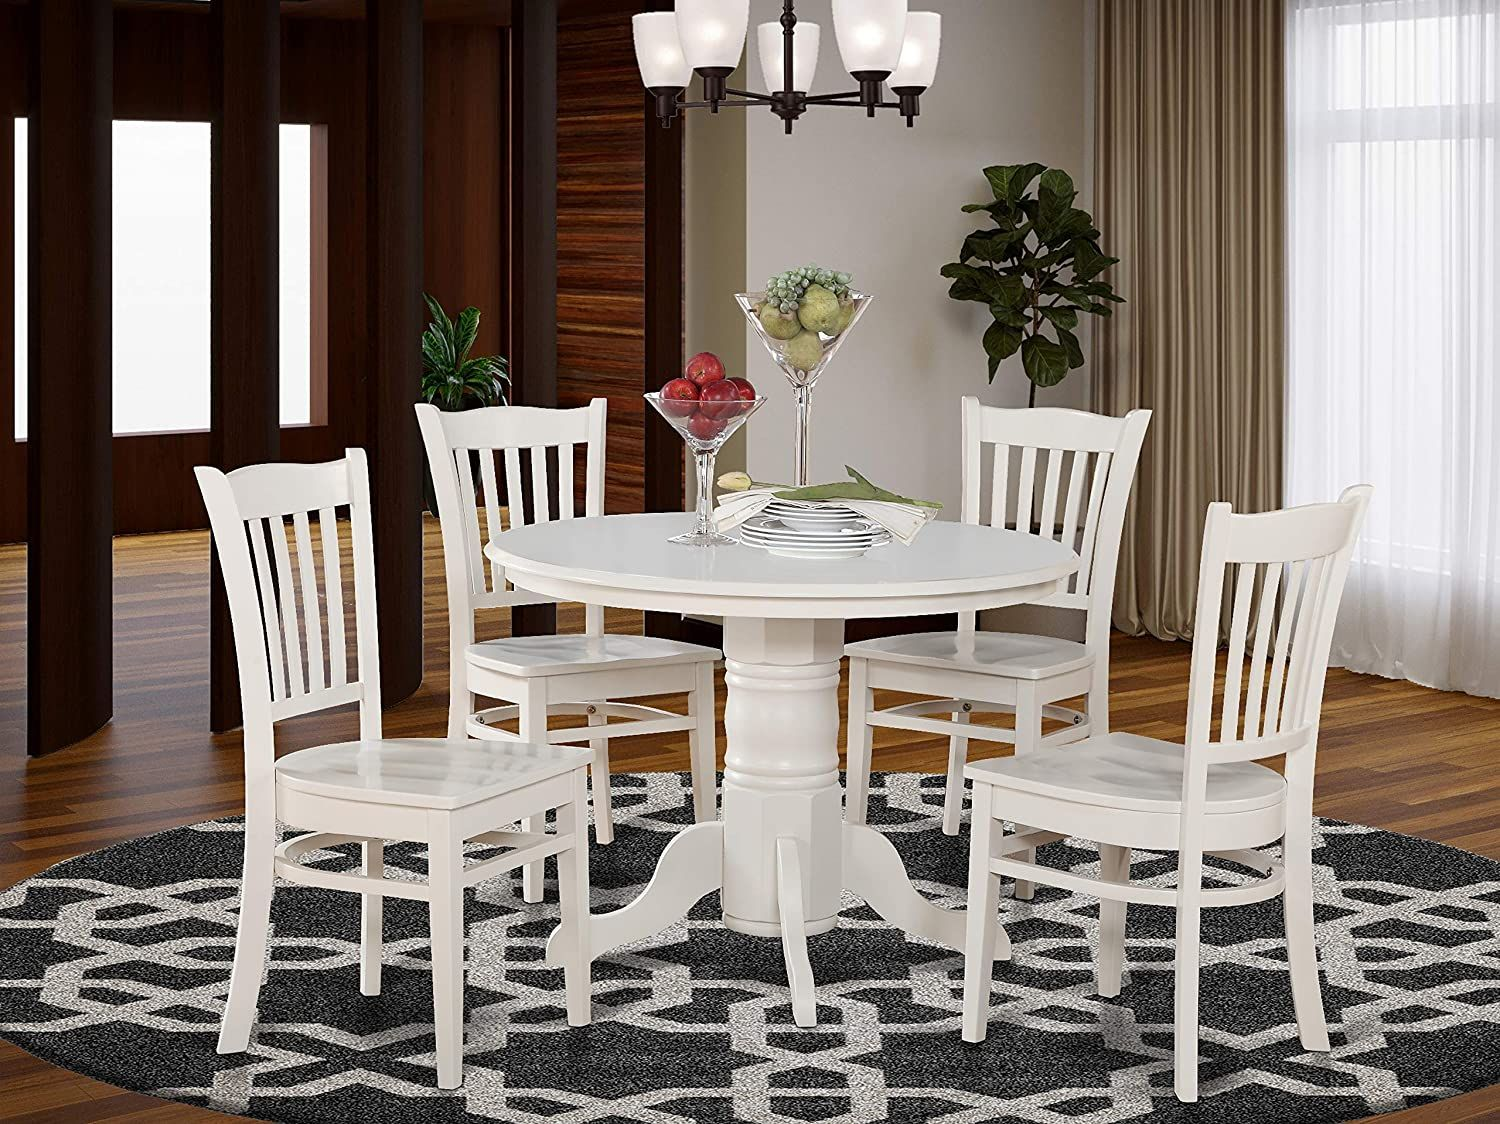 22+ Small white dining room sets Best Seller